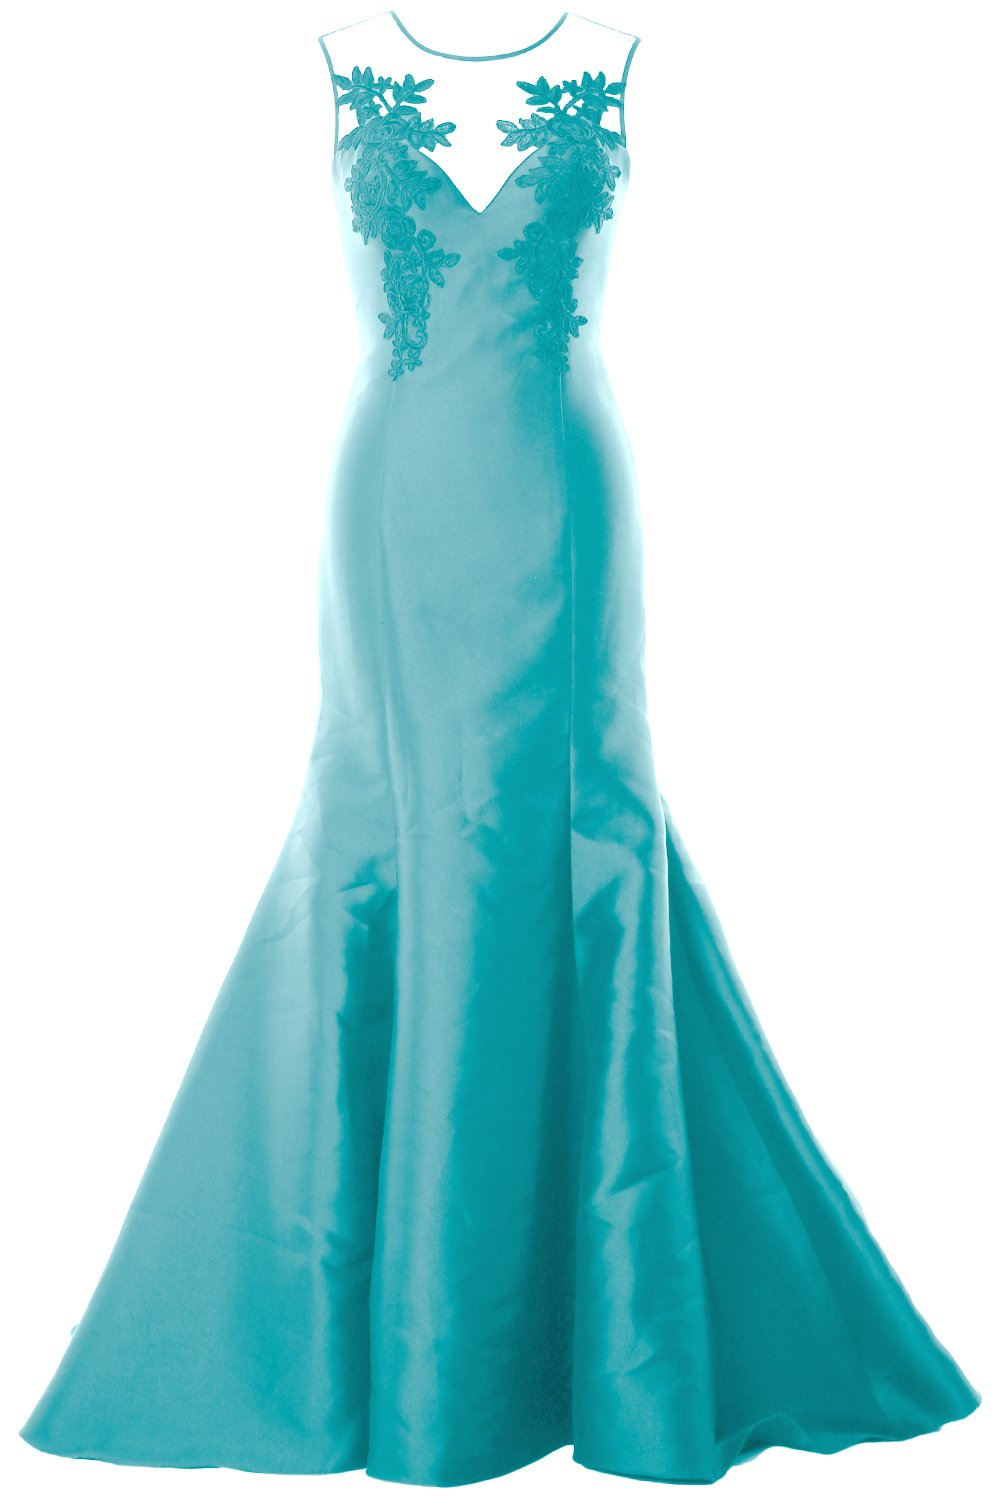 MACloth Women Mermaid Evening Gown Straps Illusion Lace Satin Formal Party Dress (18w, Turquoise) by MACloth